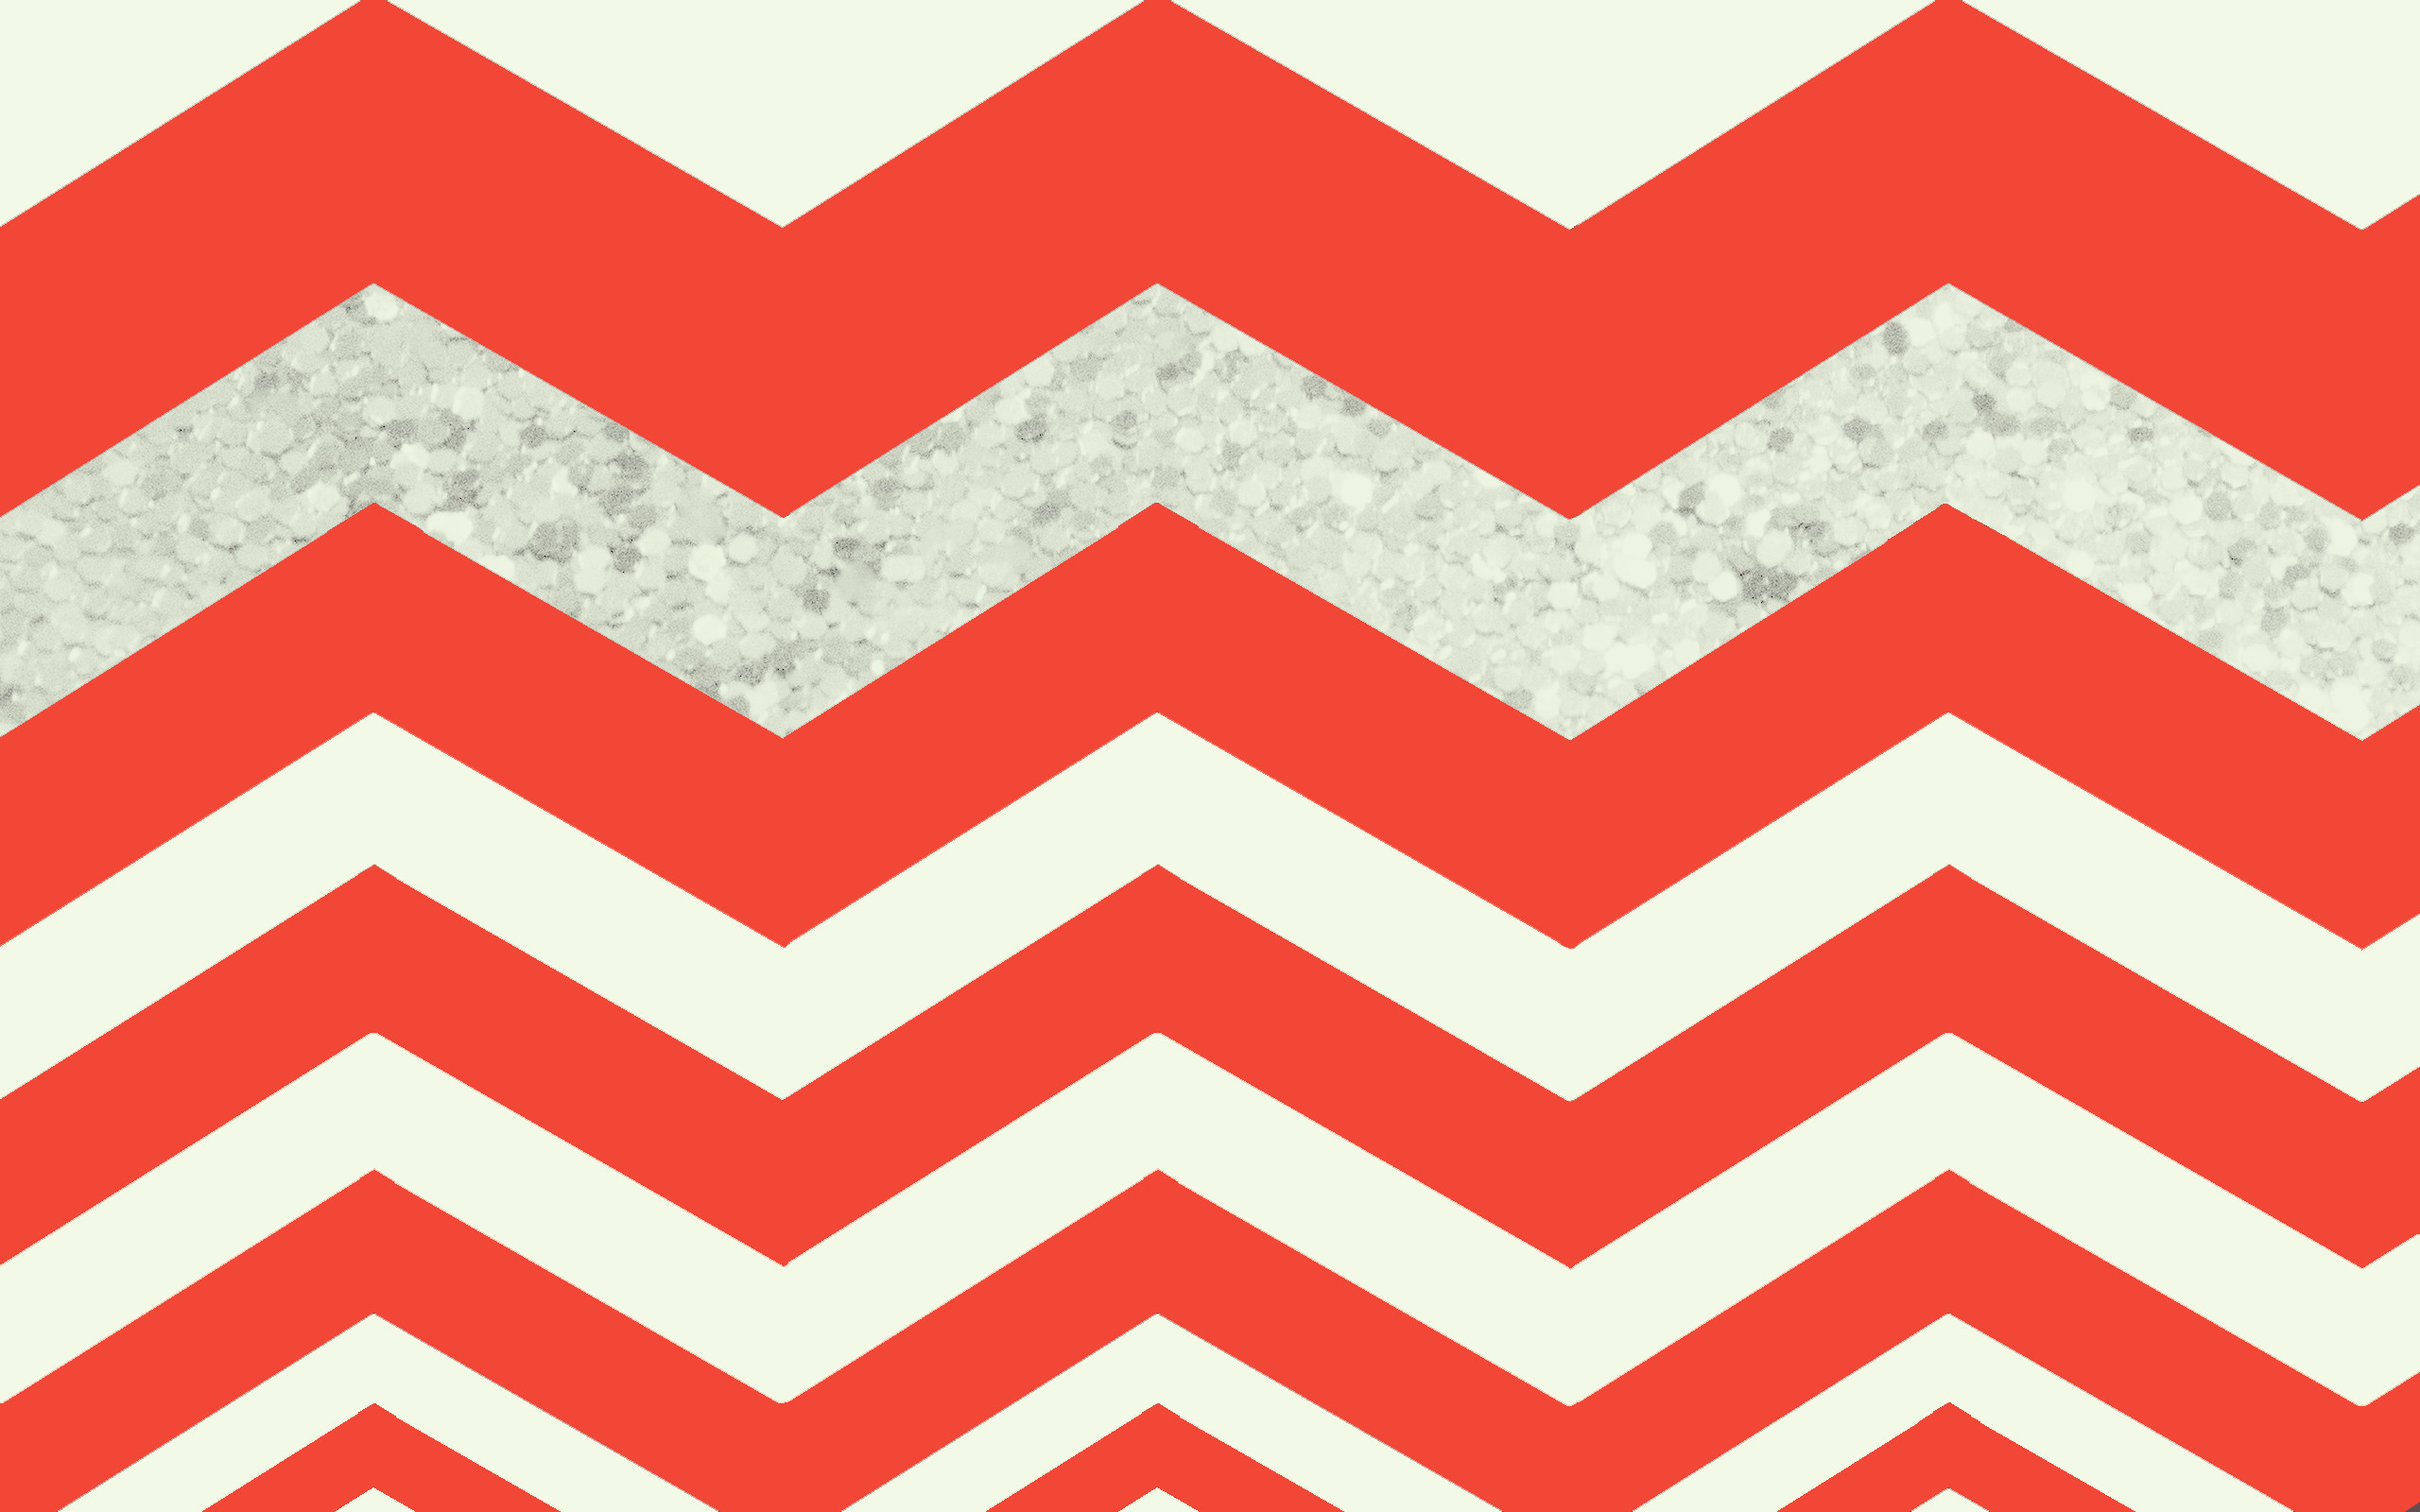 Res: 2560x1600, 17/01/2014, Chevron High Quality - Pack.994